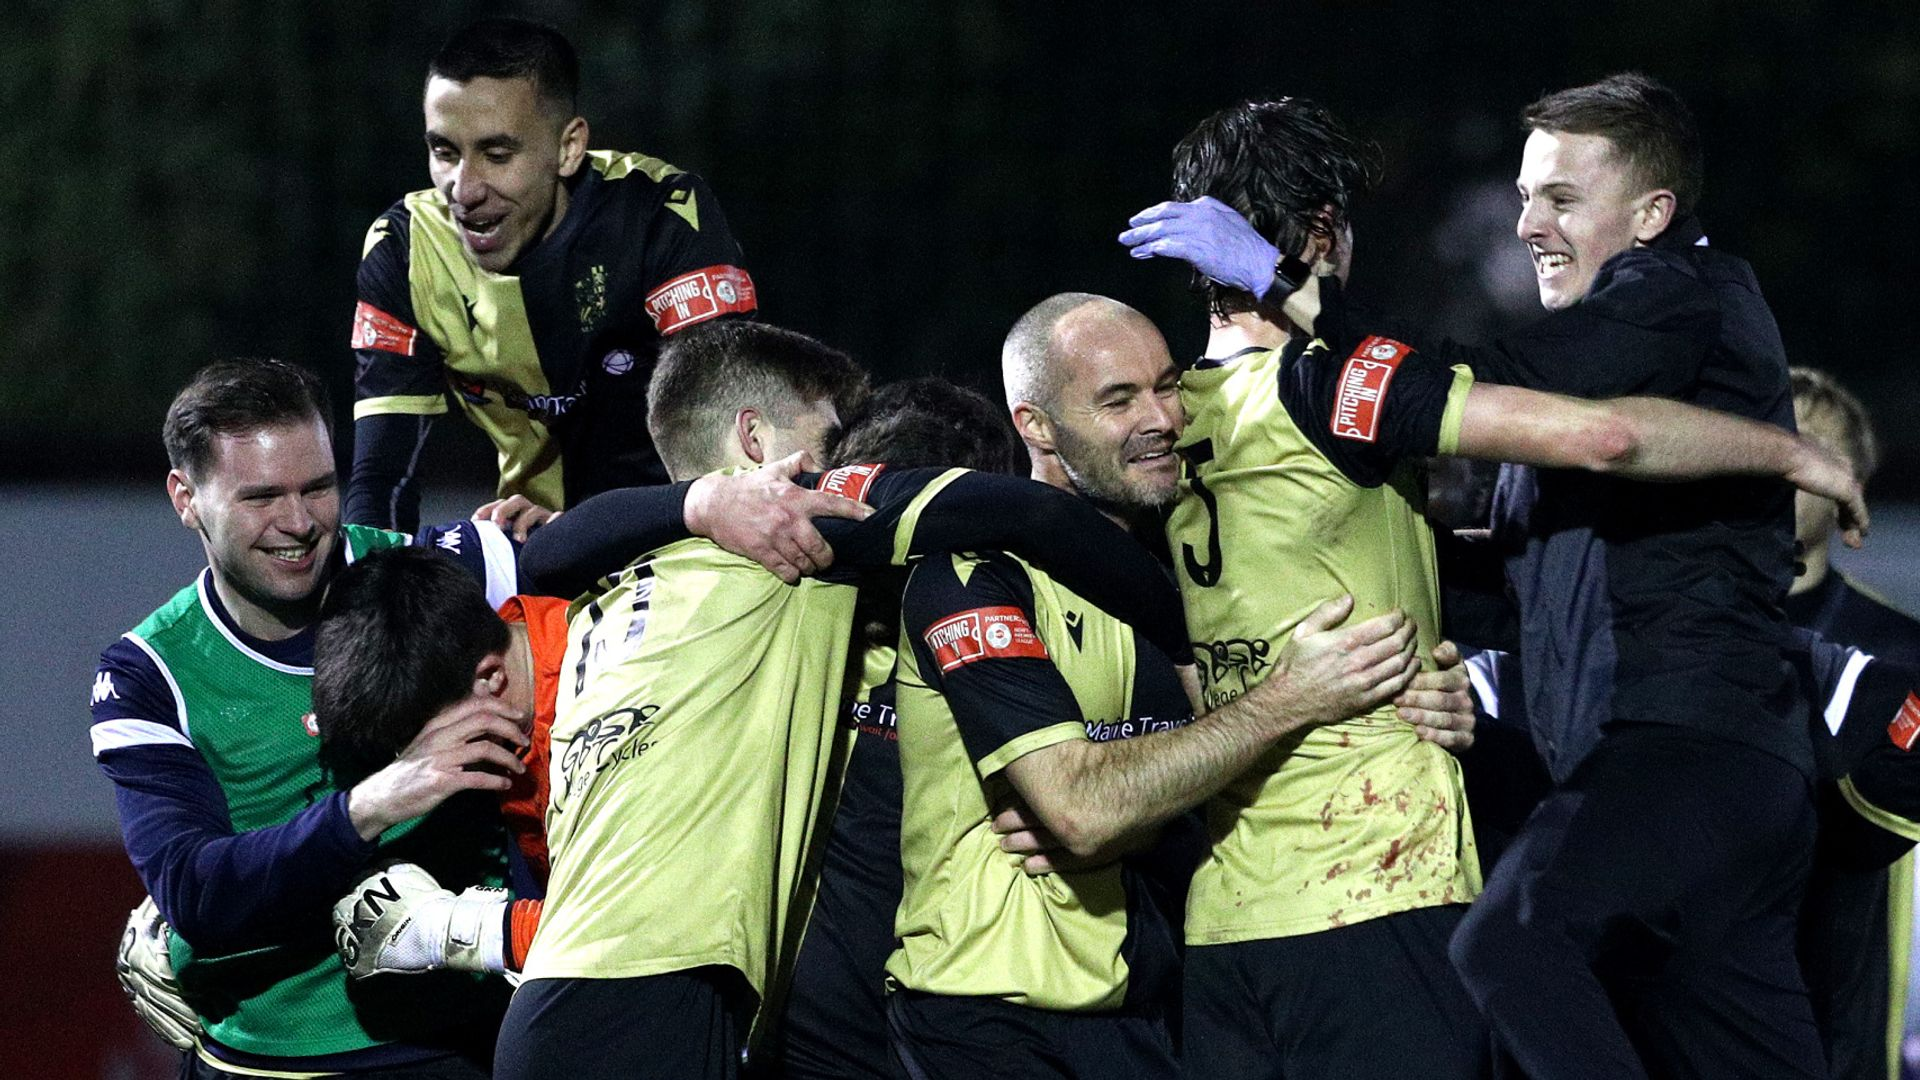 Non-League Marine get PL leaders Spurs in FA Cup